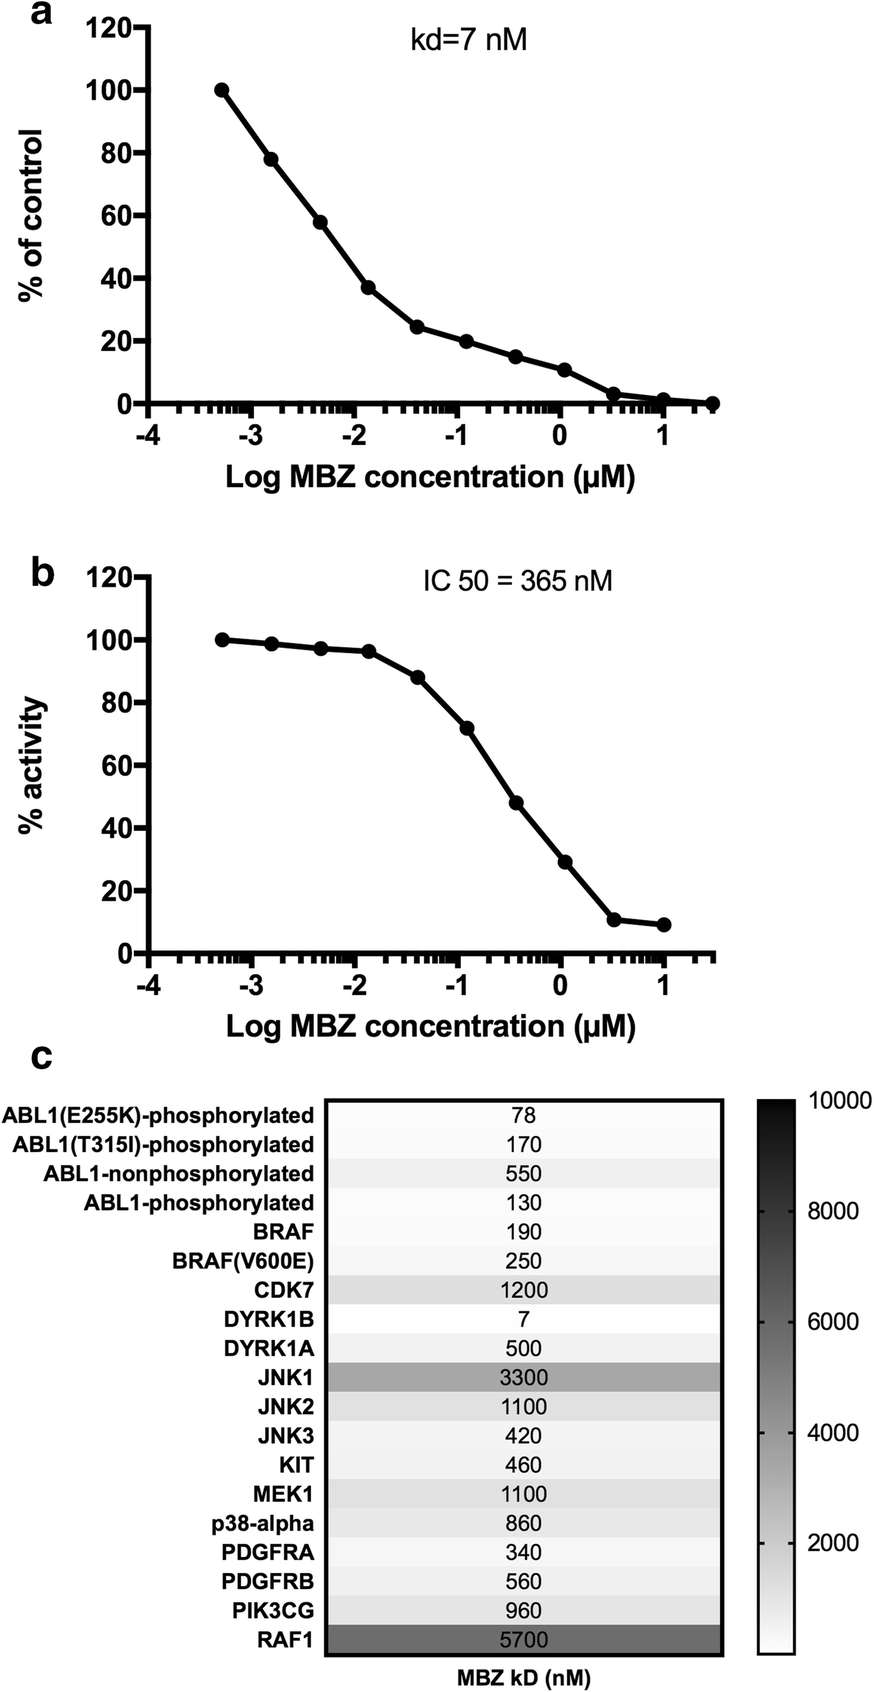 Angelica Larsson Nude mebendazole-induced m1 polarisation of thp-1 macrophages may